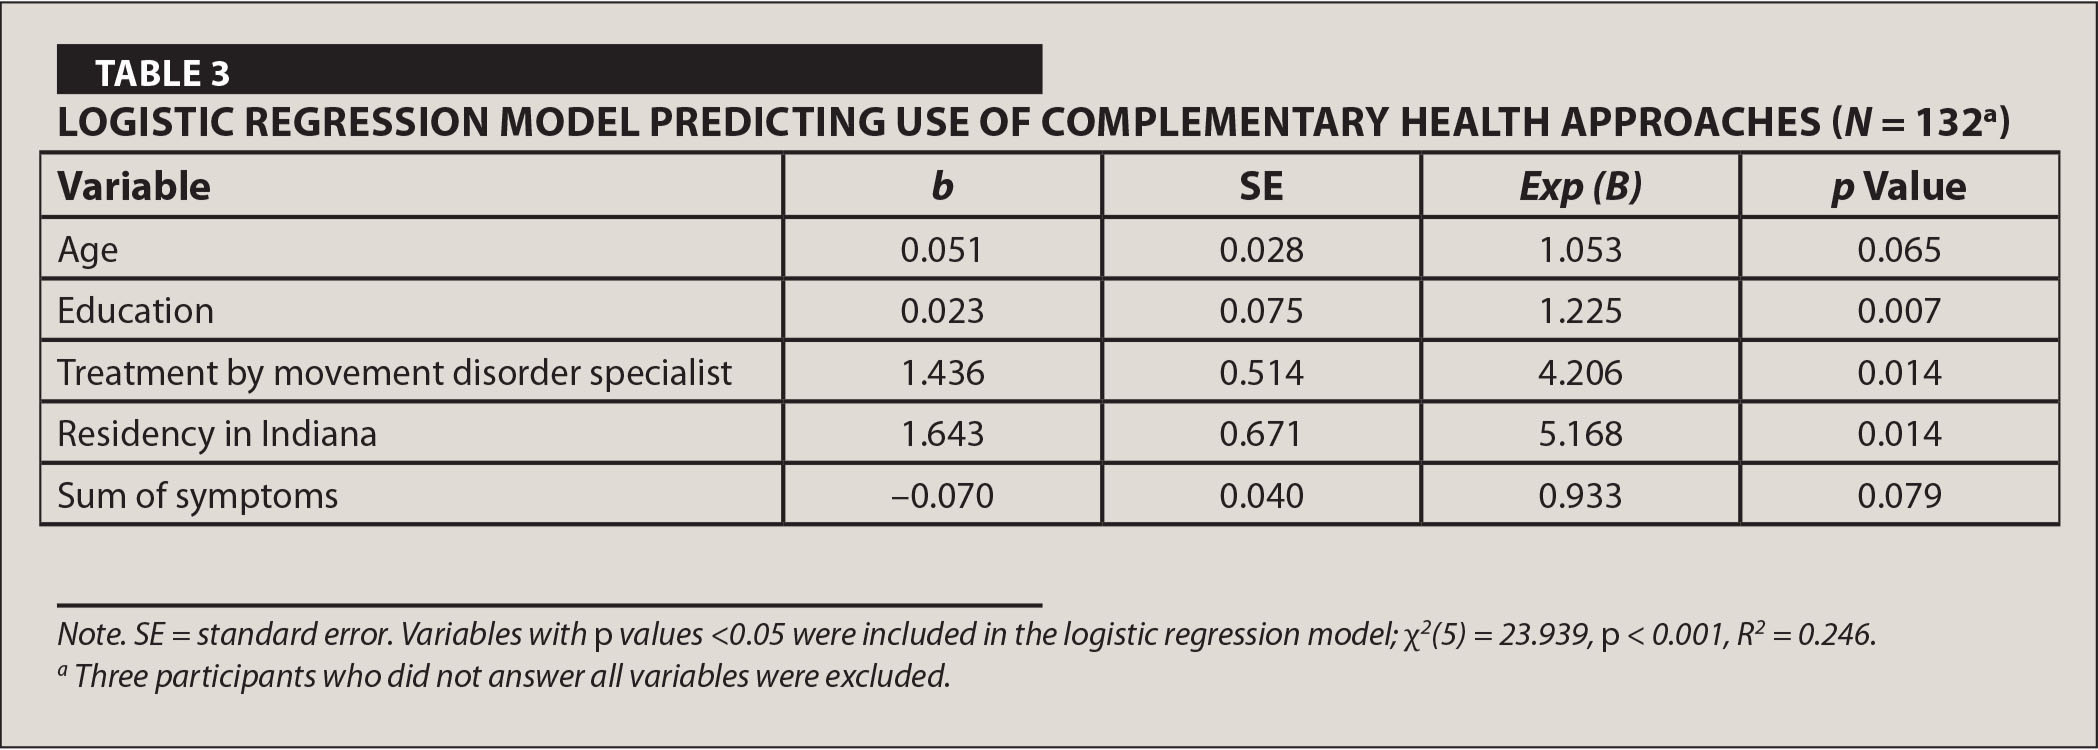 Logistic Regression Model Predicting use of Complementary Health Approaches (N = 132a)